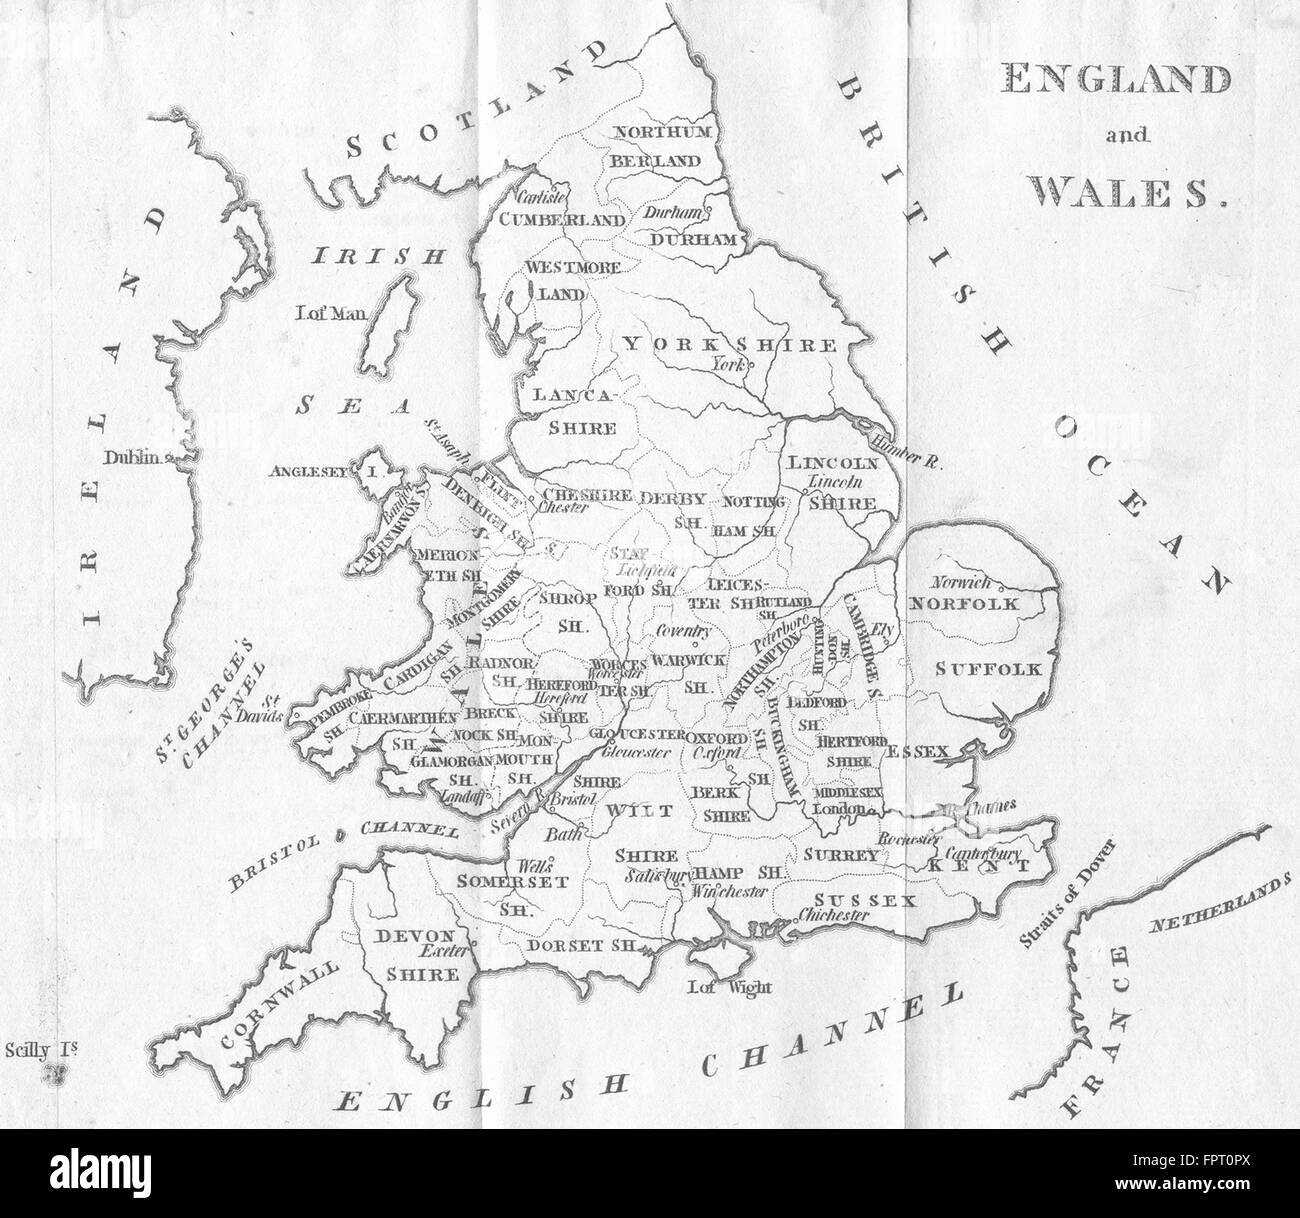 ENGLAND WALES: AIKIN: (5th Edition), 1803 antique map - Stock Image